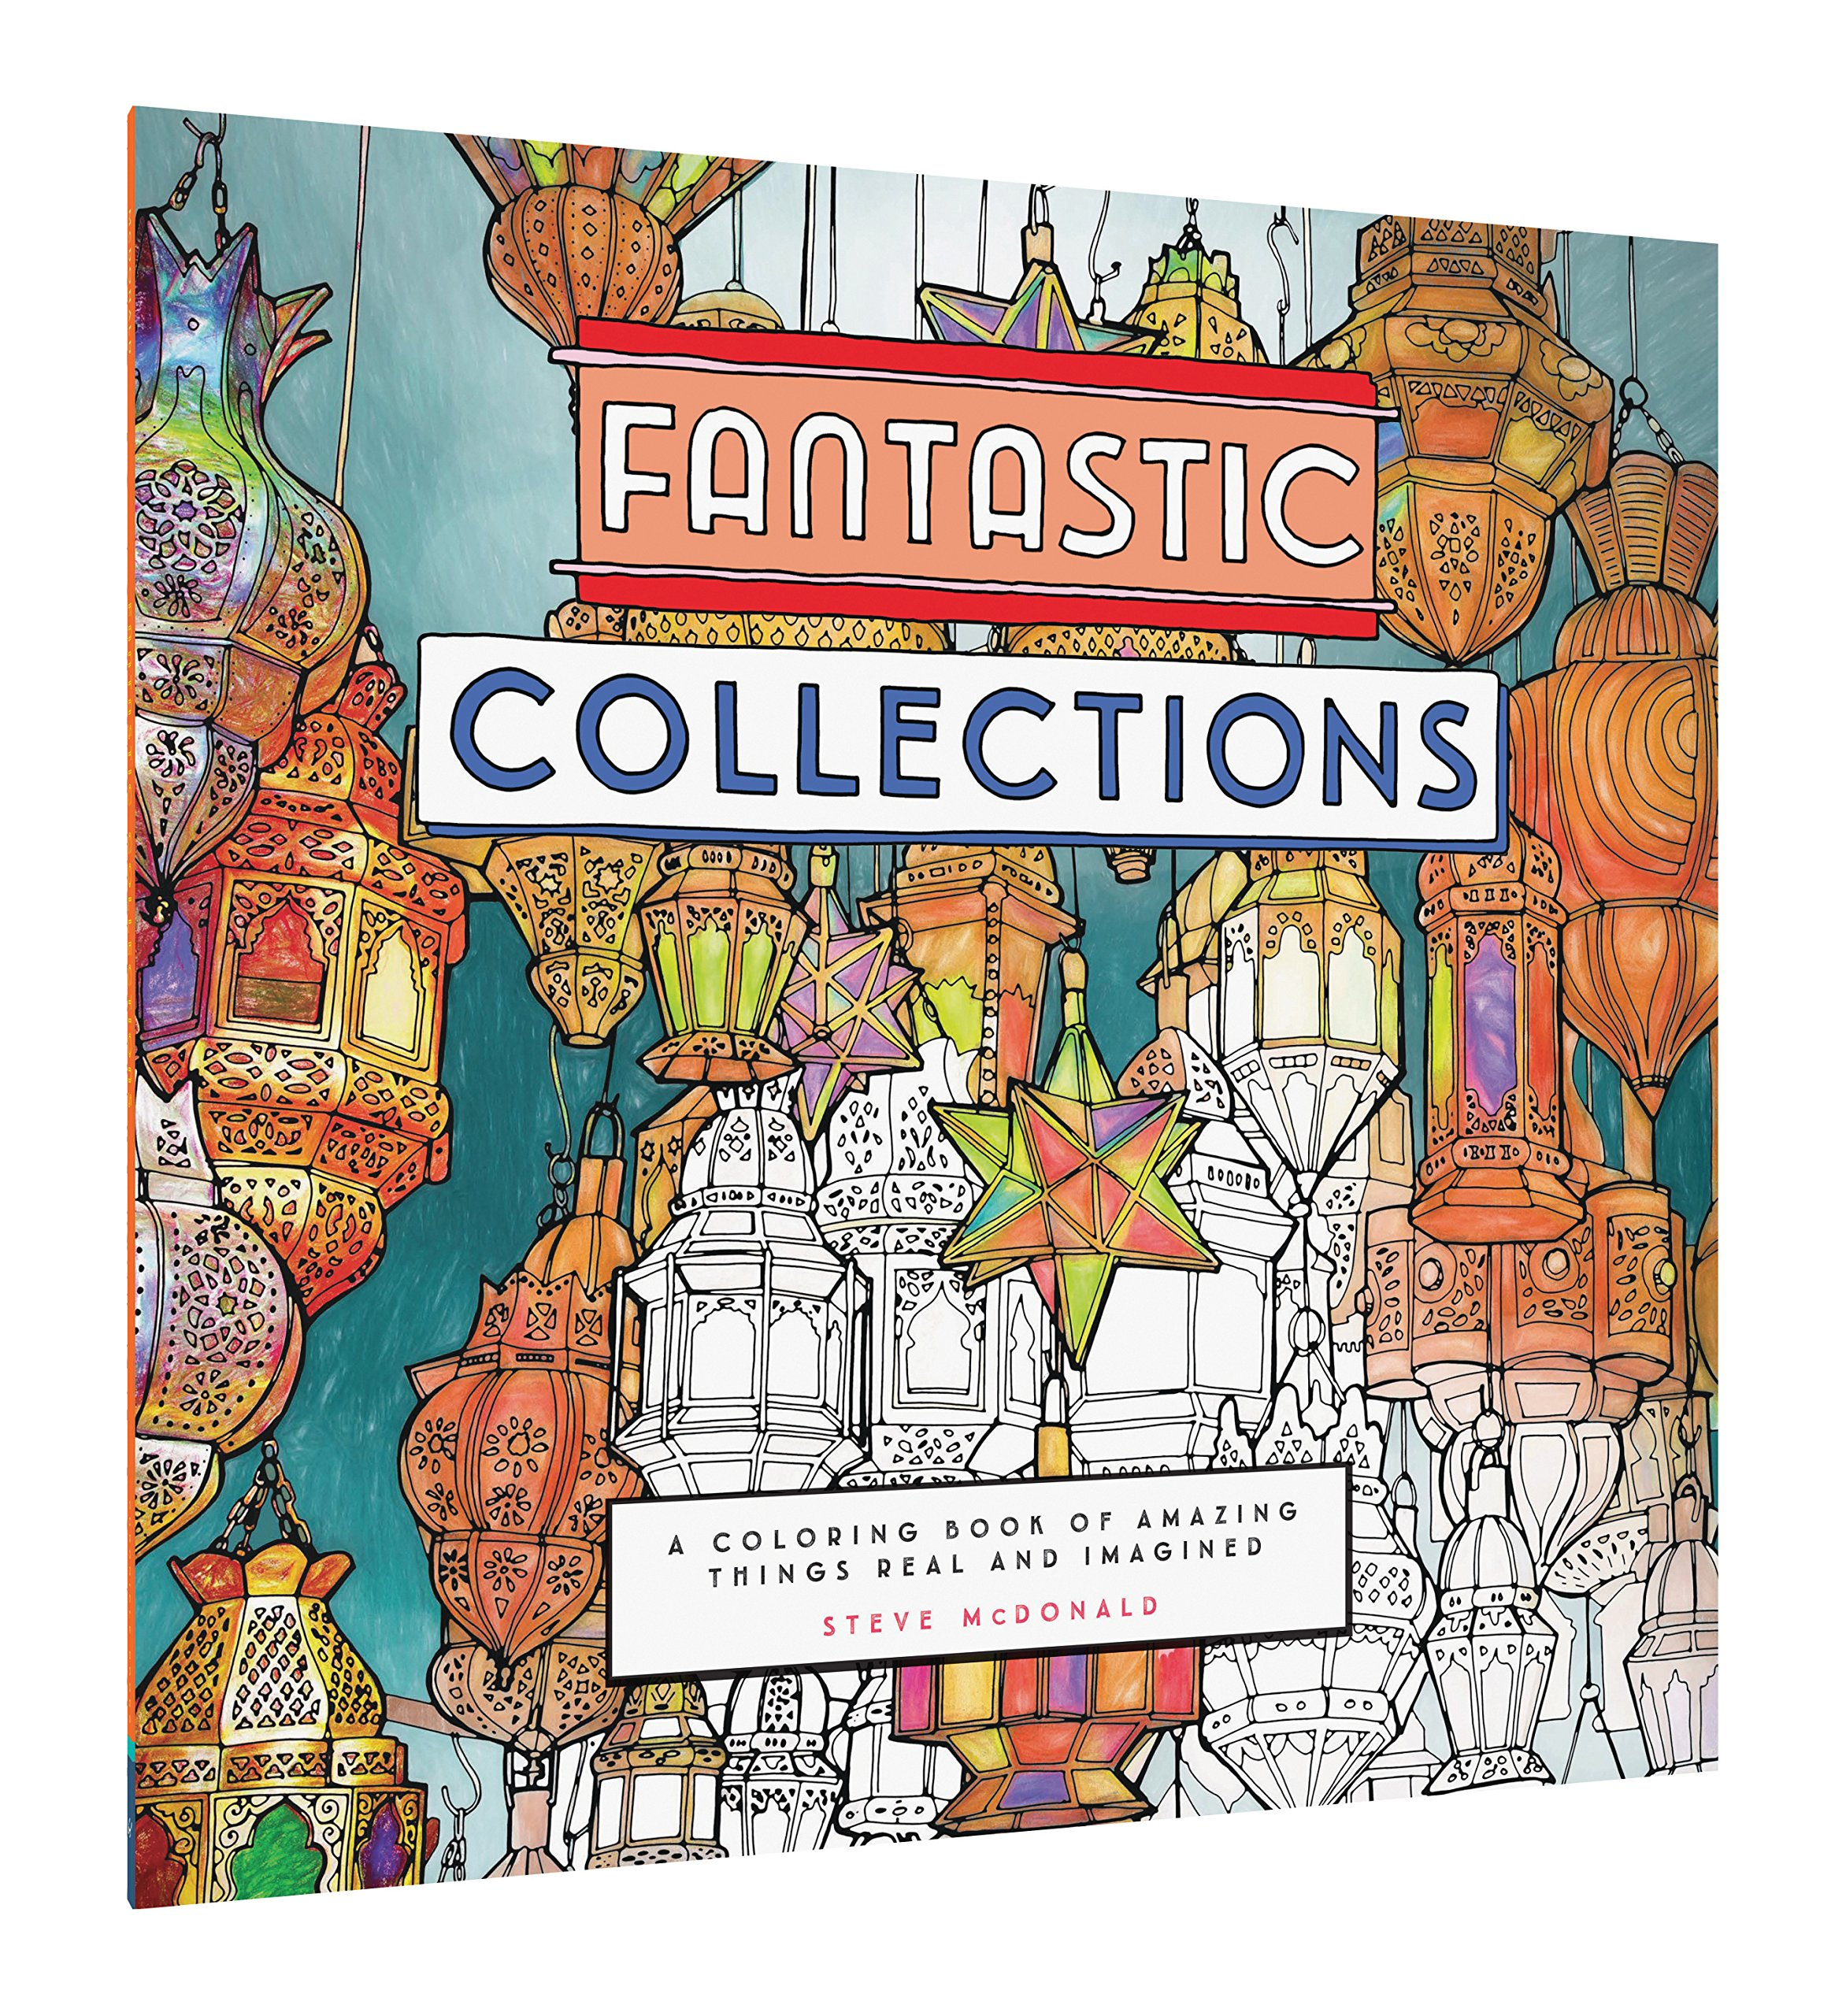 Fantastic Collections A Coloring Book Of Amazing Things Real And Imagined Steve McDonald 9781452153247 Amazon Books